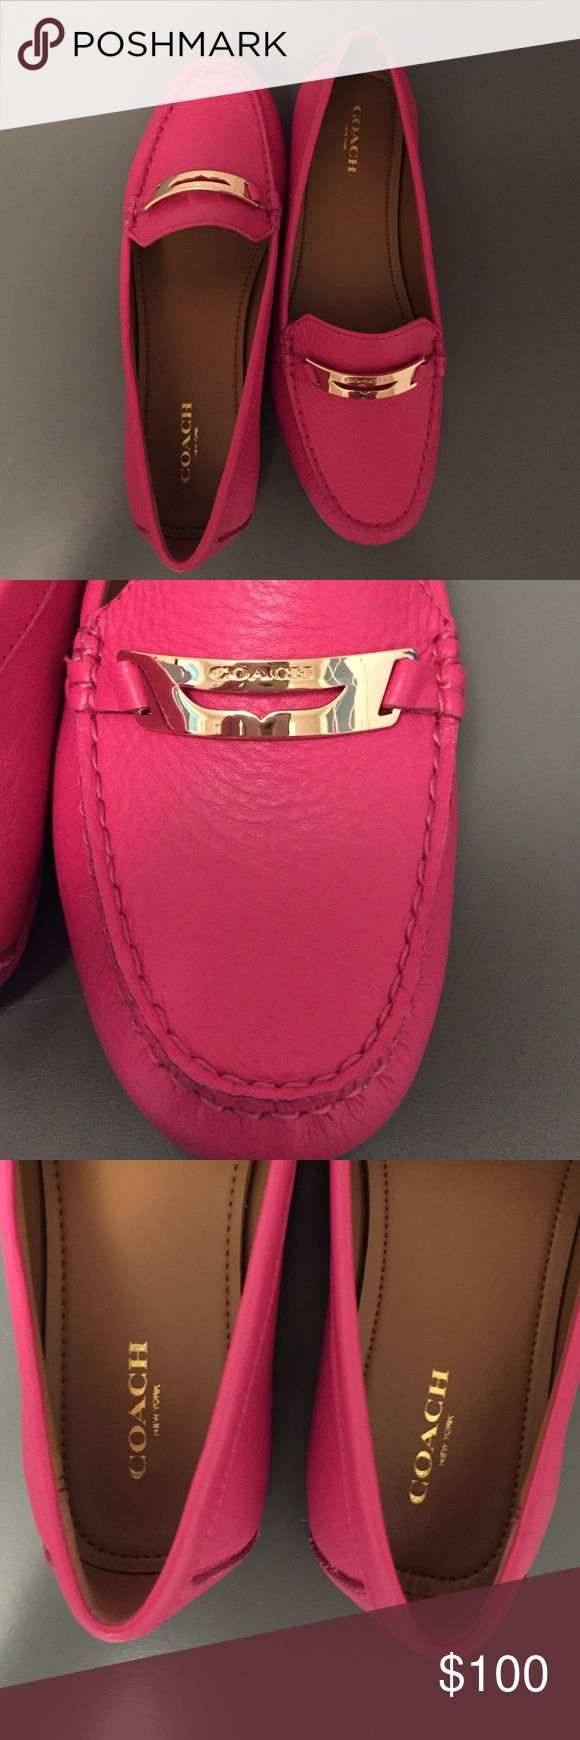 Amazing COACH Flats  Beautiful, NWOT, COACH Flats/Loafers. These are brand new only worn to try them on in the store. They are a fun, hot pink color with gold hardware. Perfect for spring or summer! Coach Shoes Flats & Loafers